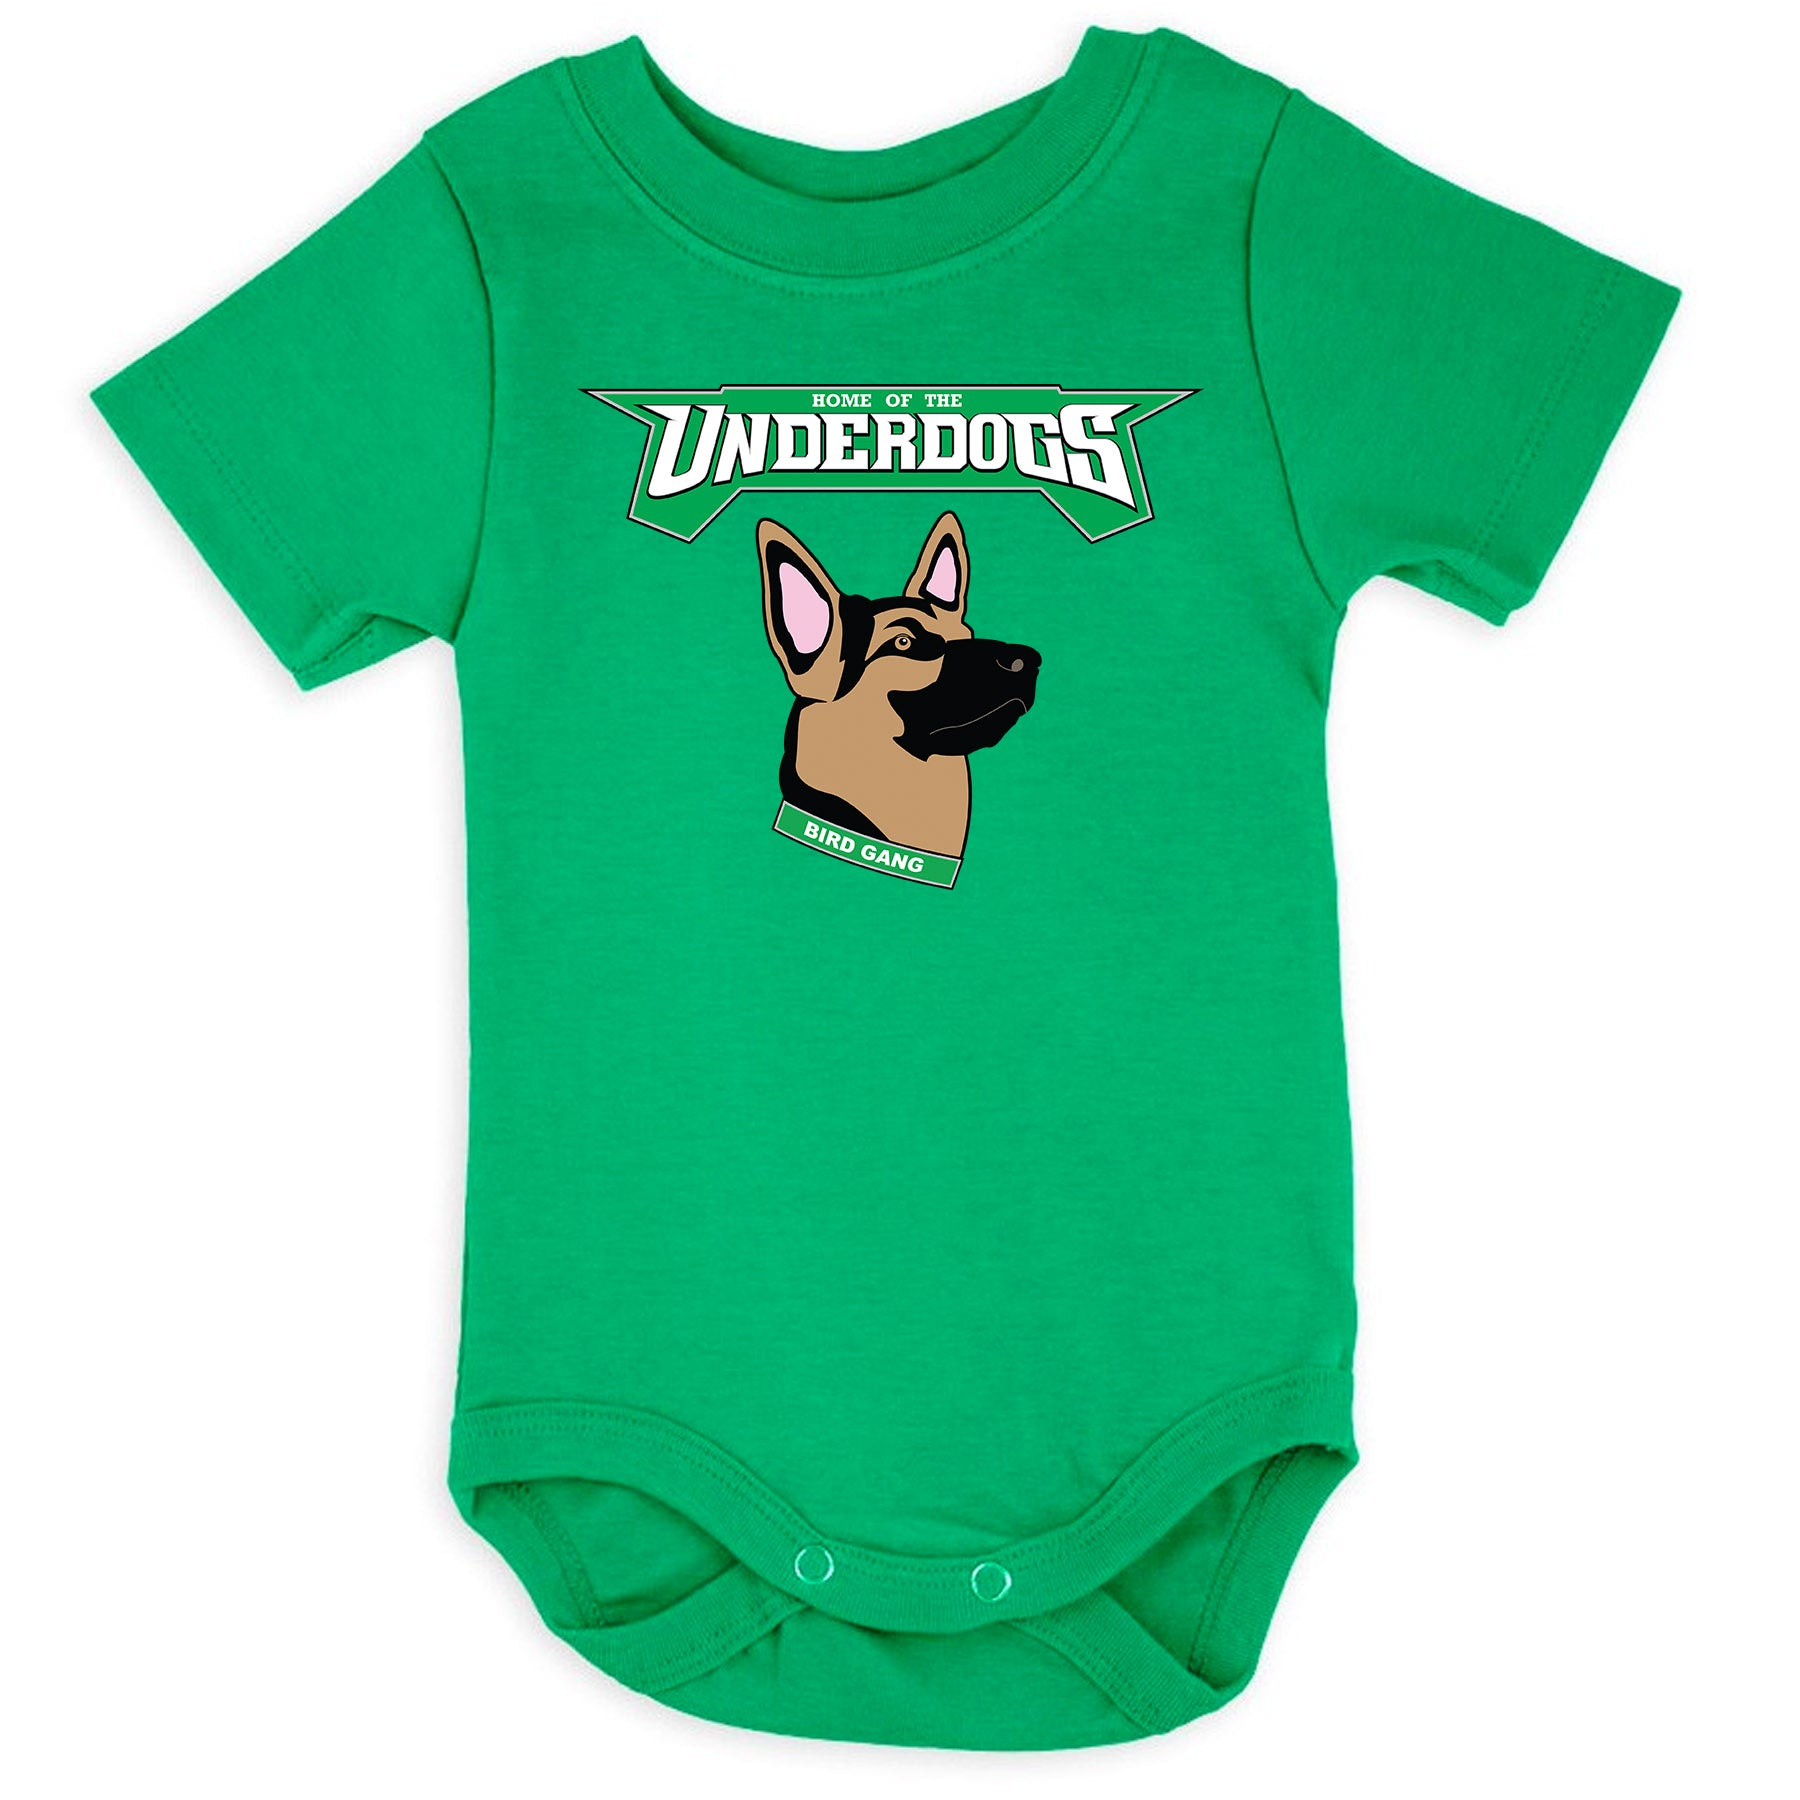 062f8733f the kelly green underdog onesie has the underdogs eagles logo printed on  the front of a